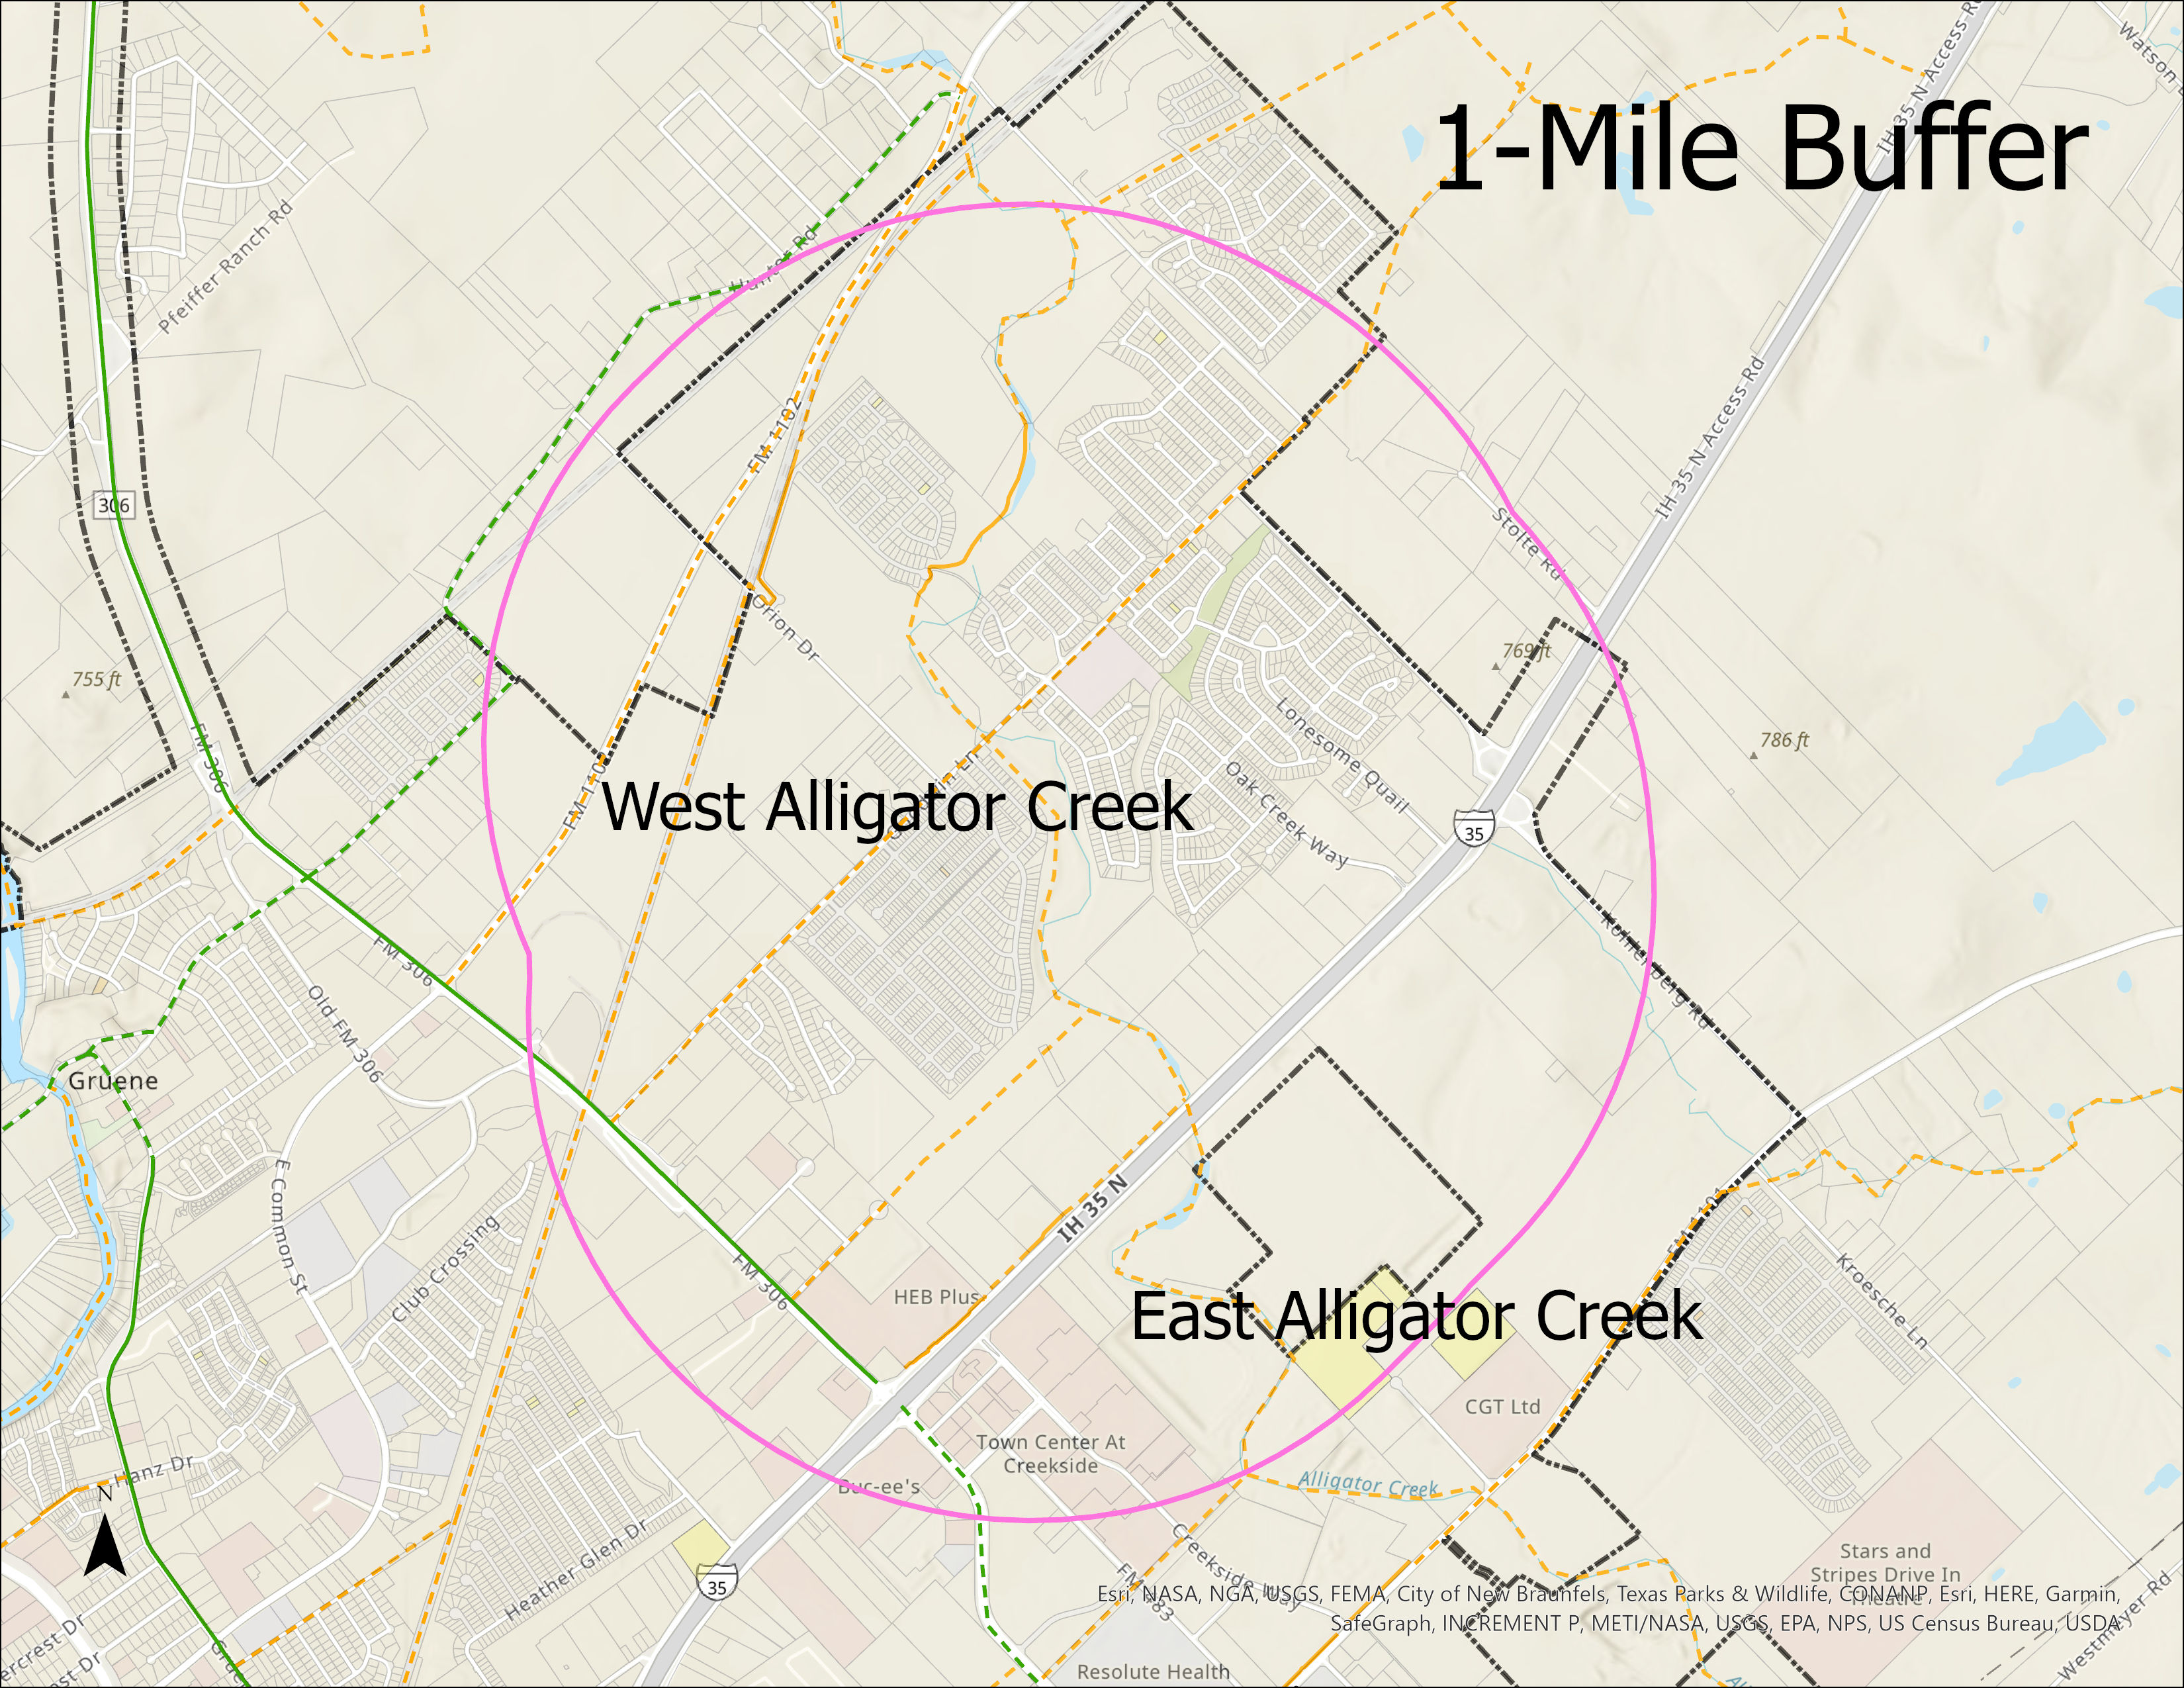 Approximate 1-mile buffer from Alligator Creek